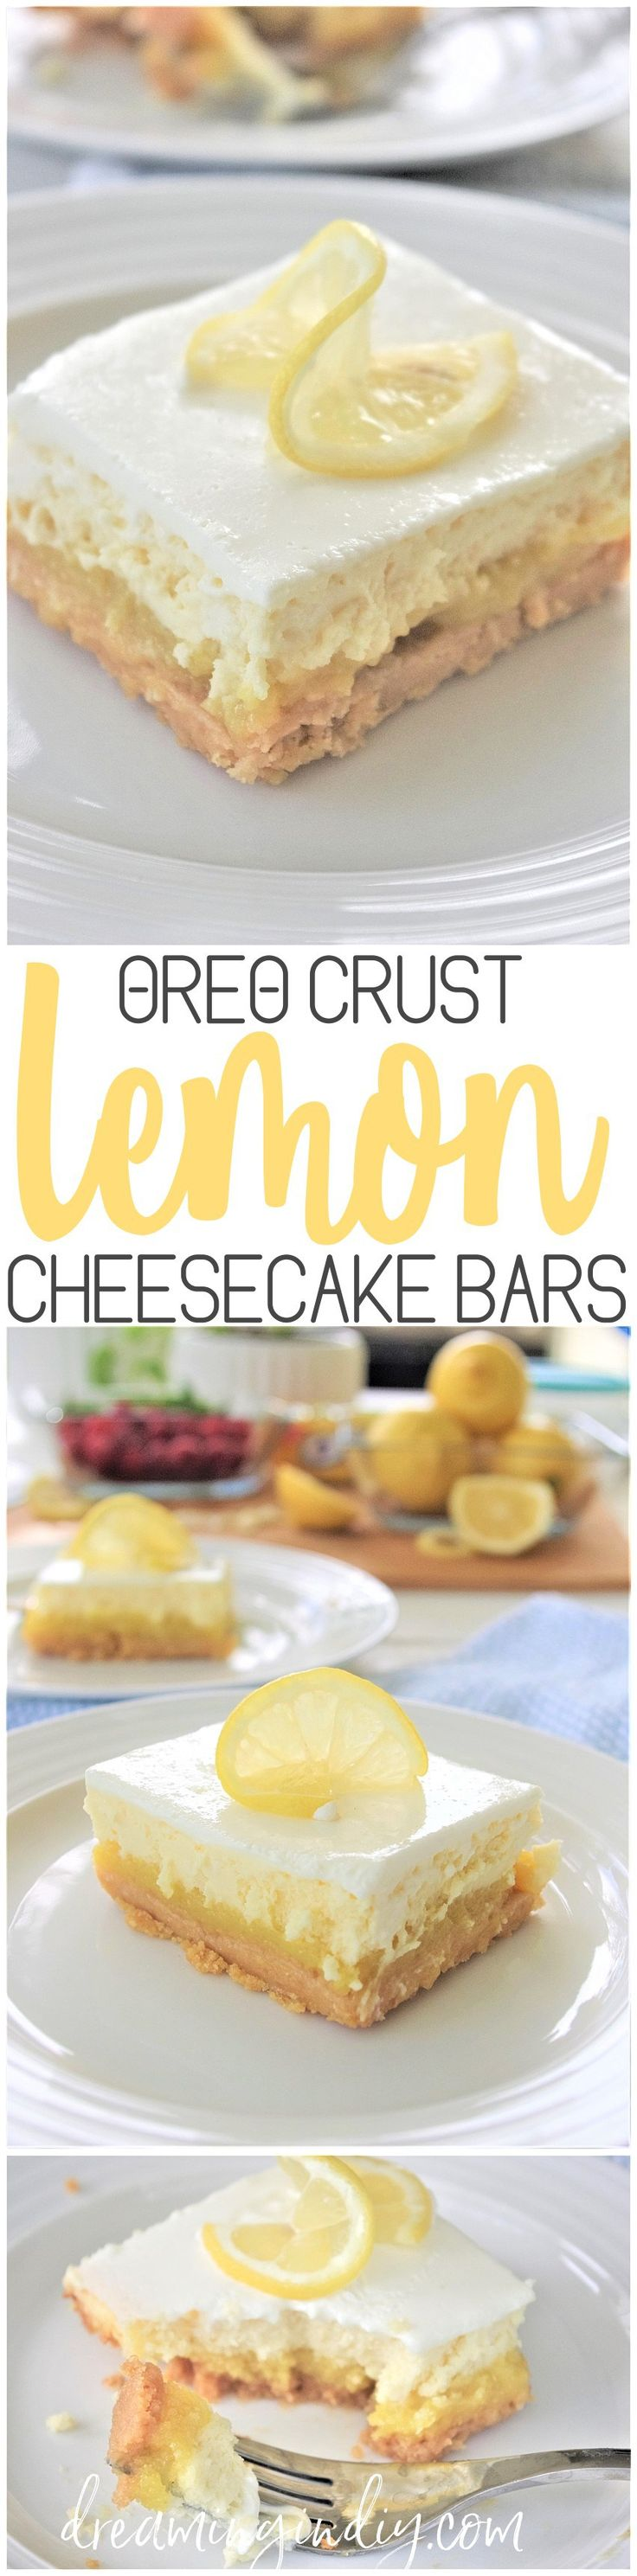 Mother's Day Brunch Treats Recipe - Oreo Crust Easy Sour Cream Lemon Layered Cheesecake Dessert Bars Recipe via Dreaming in DIY - Layers of buttery lemon oreo crust, smooth lemon zested filling, creamy, light cheesecake and topped off with lusciously sweet sour cream.  This is going to be your new favorite lemon dessert recipe for parties and family night!